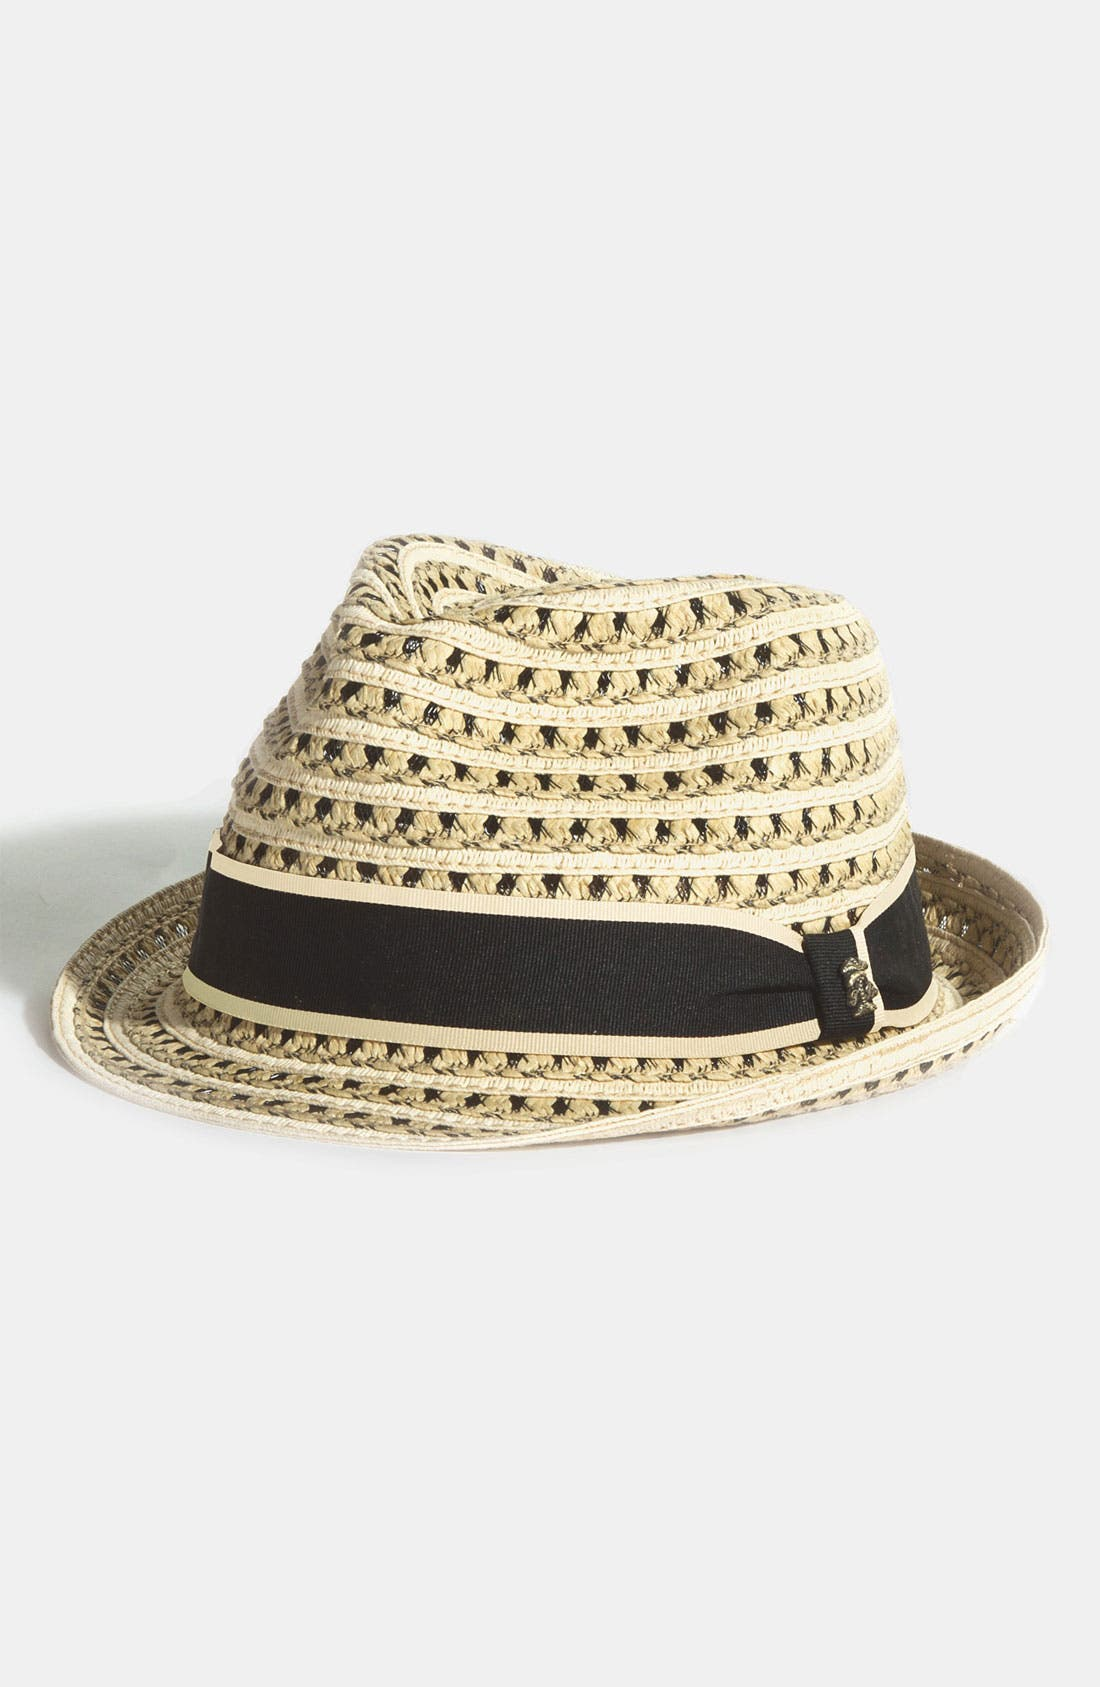 Alternate Image 1 Selected - Tommy Bahama Braided Paper Fedora